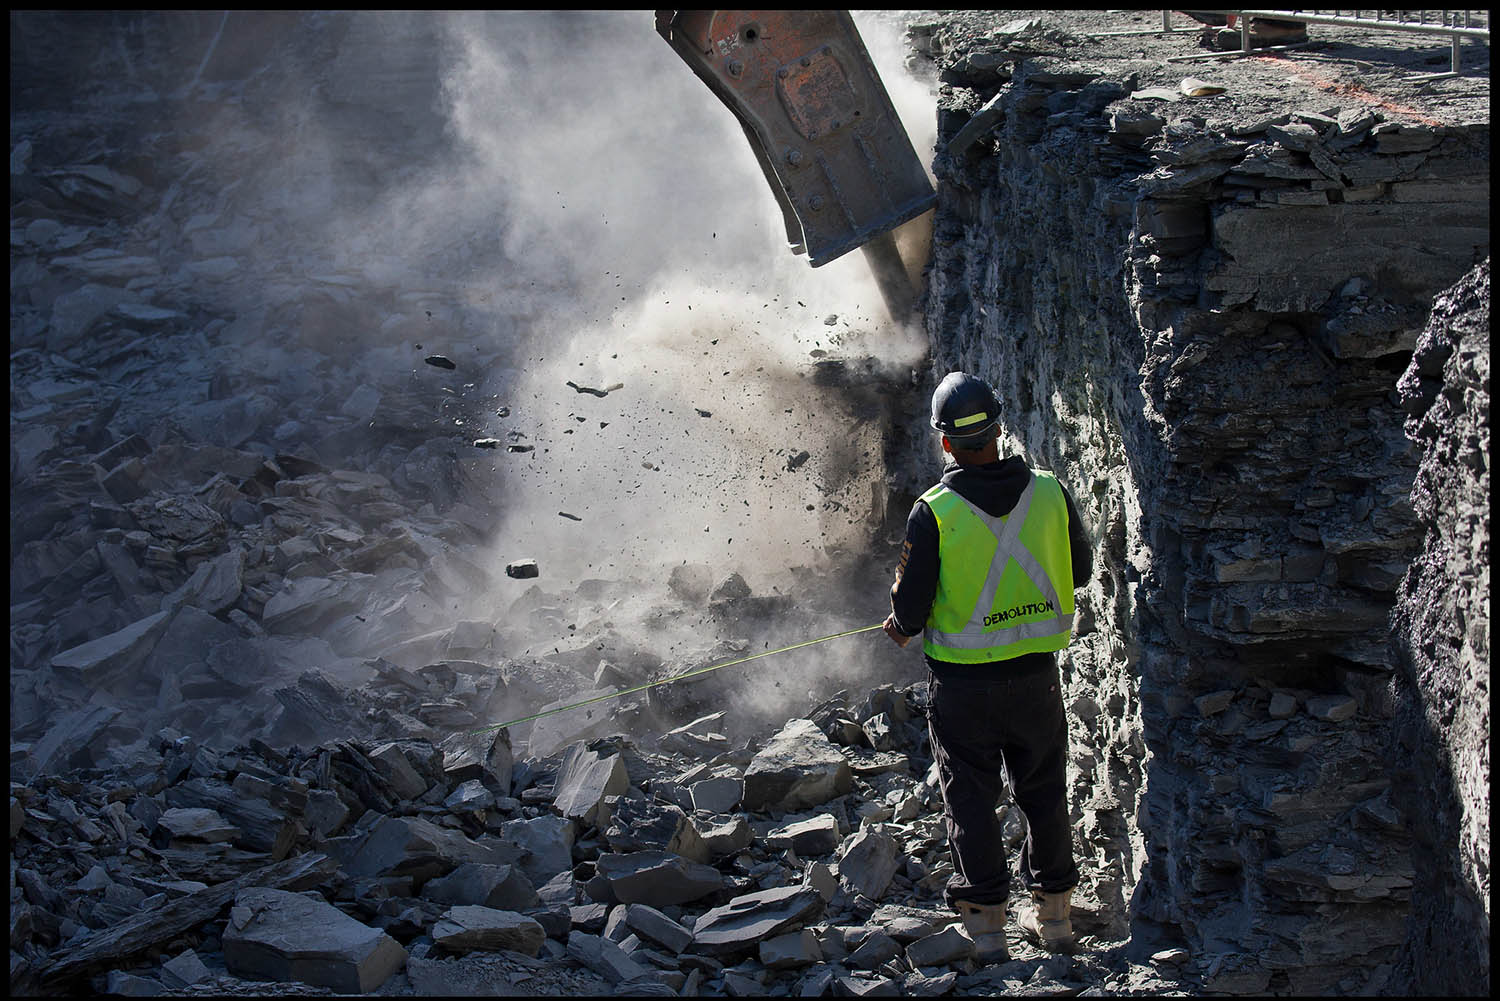 The excavator chisels its way through the shale bedrock of Toronto's South Core, an area of the city south of King Street down to the lake, where the shale bedrock is close to the surface at the lakefront about 10 metres down. Chiseling out the ancient sedimentary rock is the only practical way to excavate the site when deep enough to reach the shale.